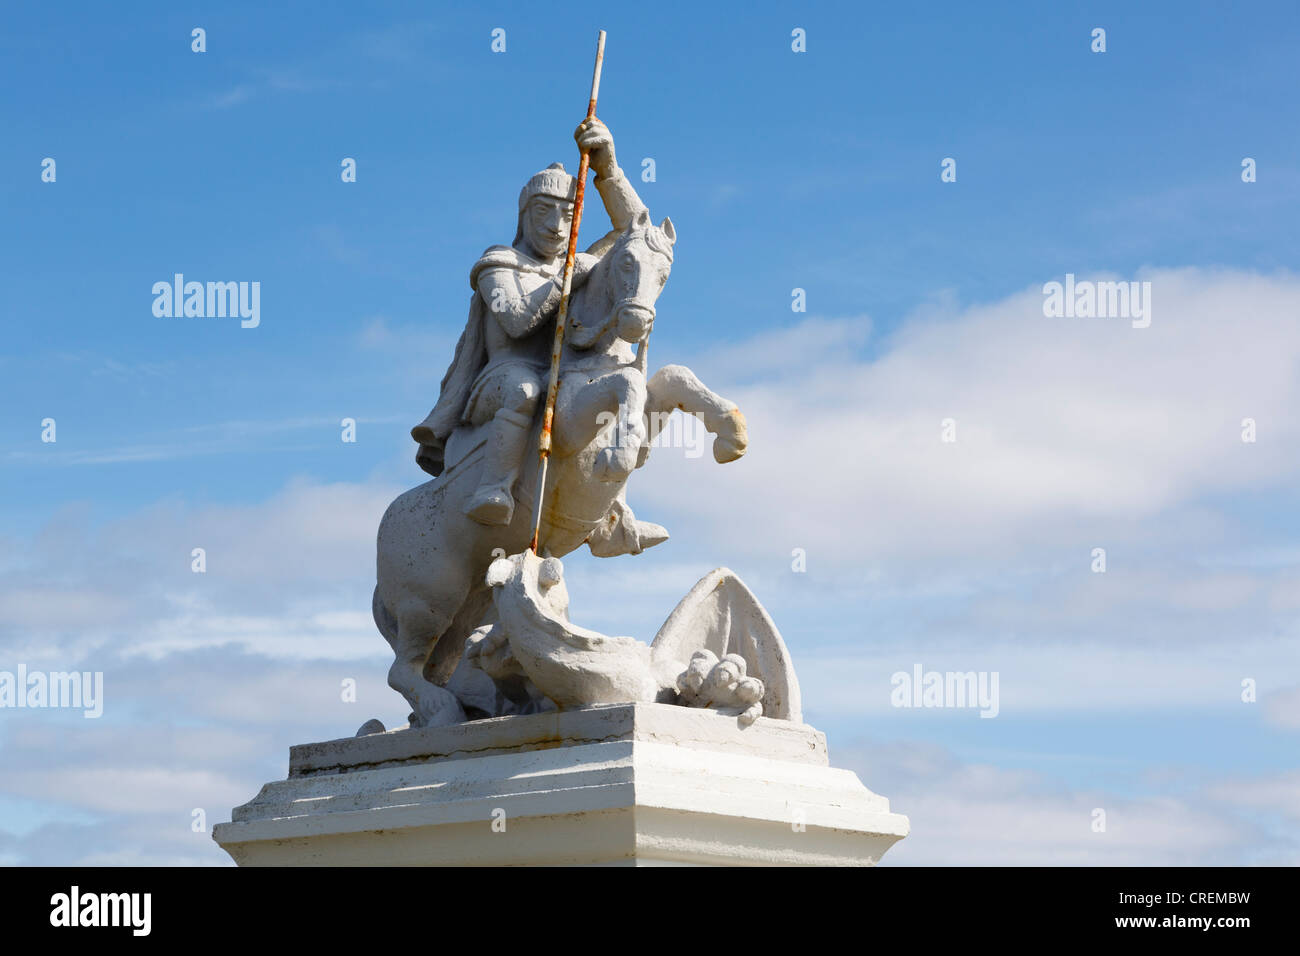 Italian prisoners of war memorial statue of St George slaying the Dragon 1943. Lamb Holm, Orkney Islands, Scotland, - Stock Image